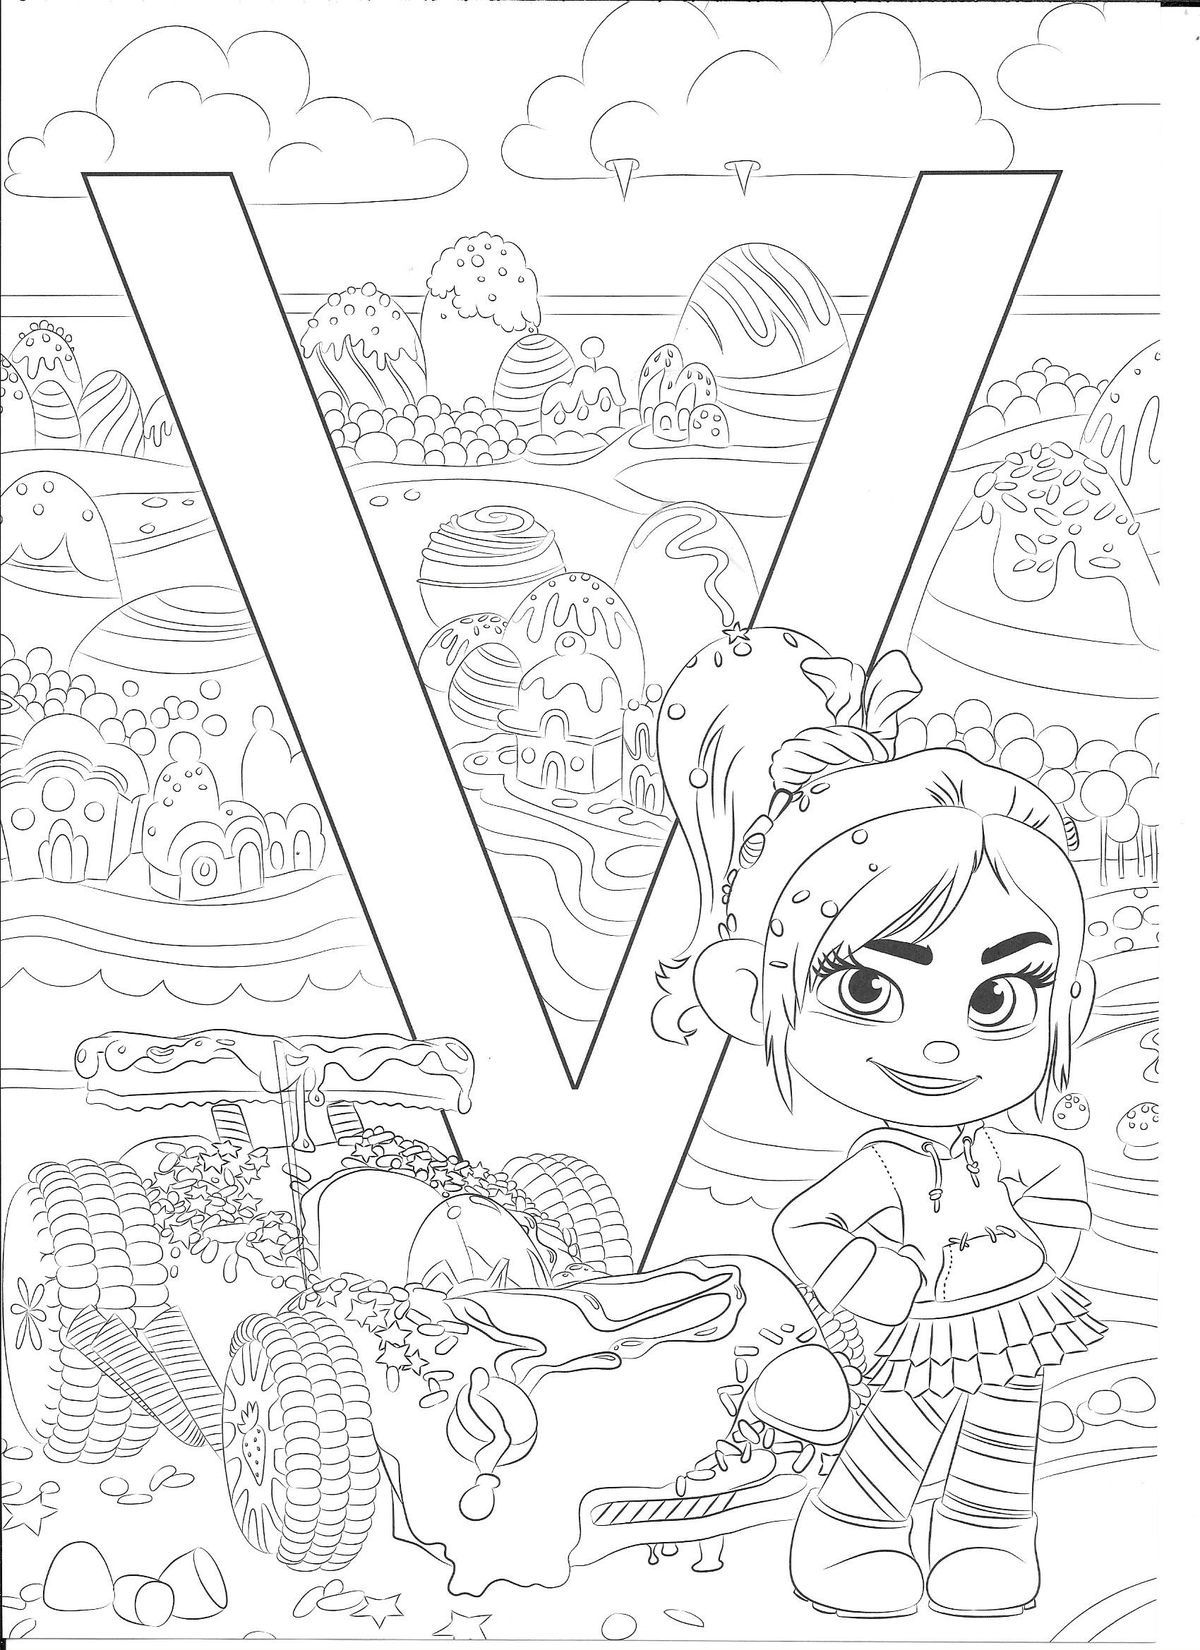 Pin By Julie Hambling On Alphabet Coloring Sheets Abc Coloring Pages Disney Coloring Sheets Disney Coloring Pages Printables [ 1650 x 1200 Pixel ]